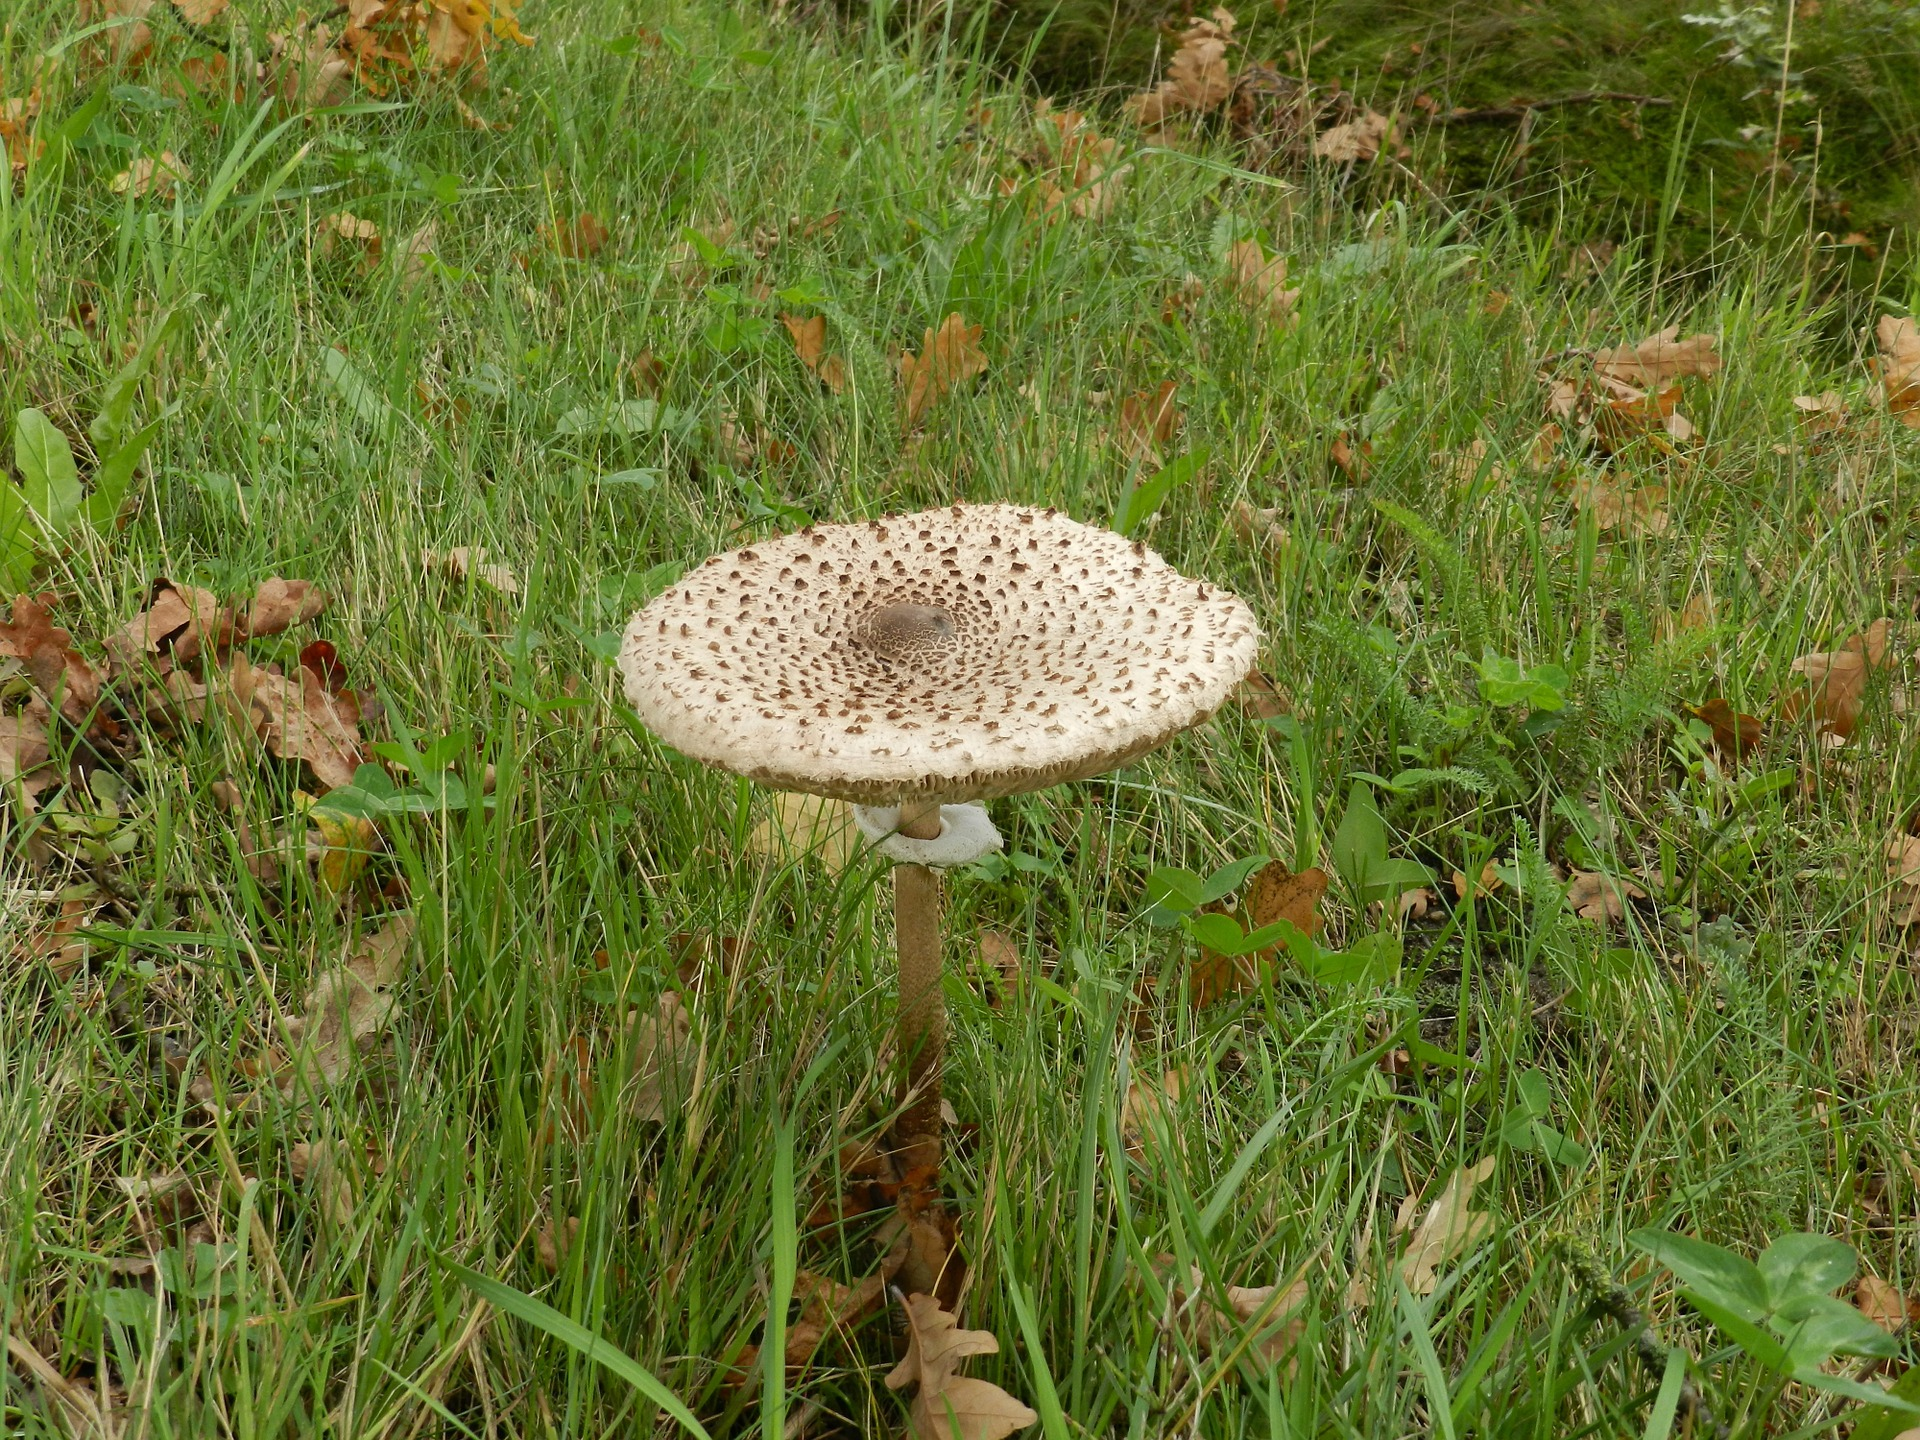 Macrolepiota procera, the parasol mushroom, is a basidiomycete fungus with a large, prominent fruiting body resembling a parasol. It is a fairly common species on well-drained soils. It is found solitary or in groups and fairy rings in pastures and occasi